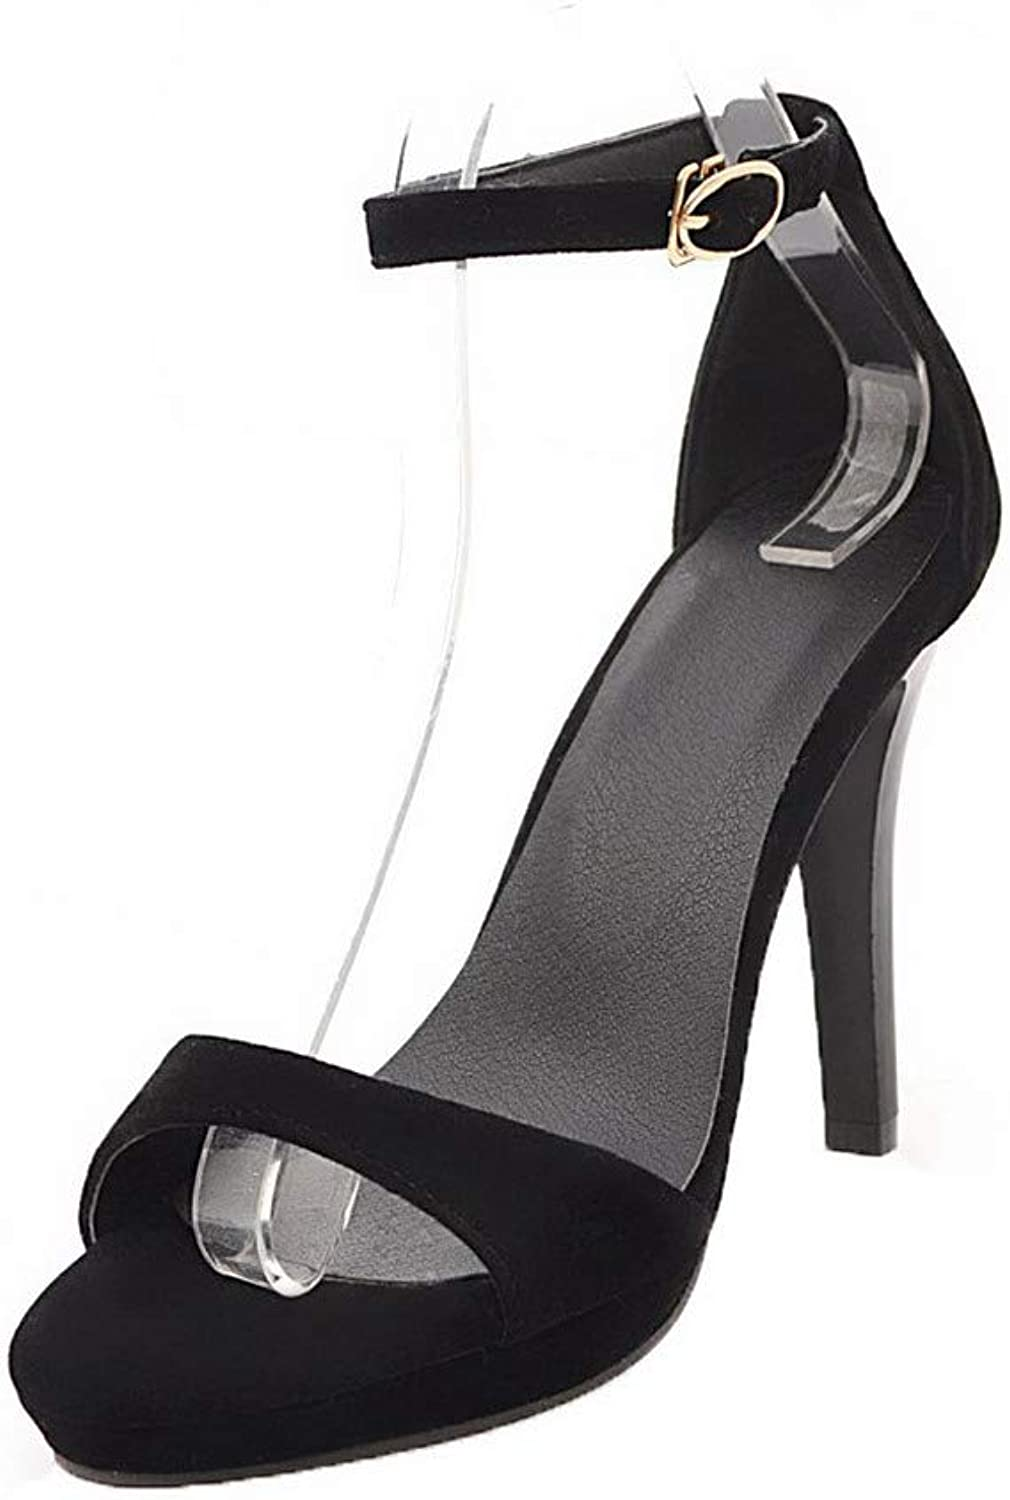 WeenFashion Women's High-Heels Frosted Solid Buckle Open Toe Sandals, Black, 36